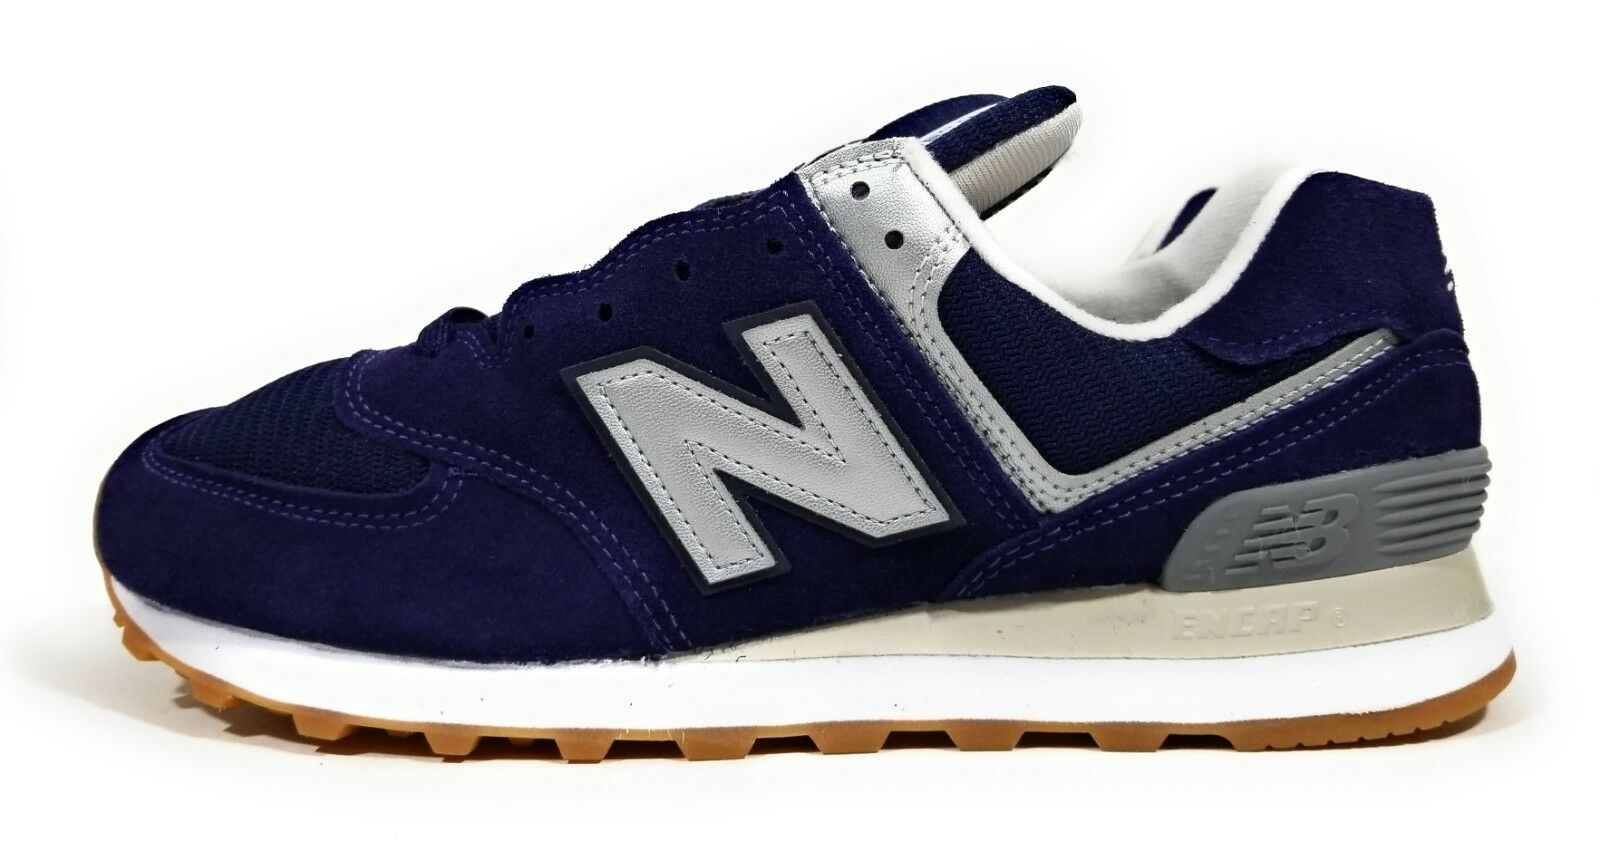 New Balance 574 Classic Retro Mens Running shoes Navy bluee Size 9.5